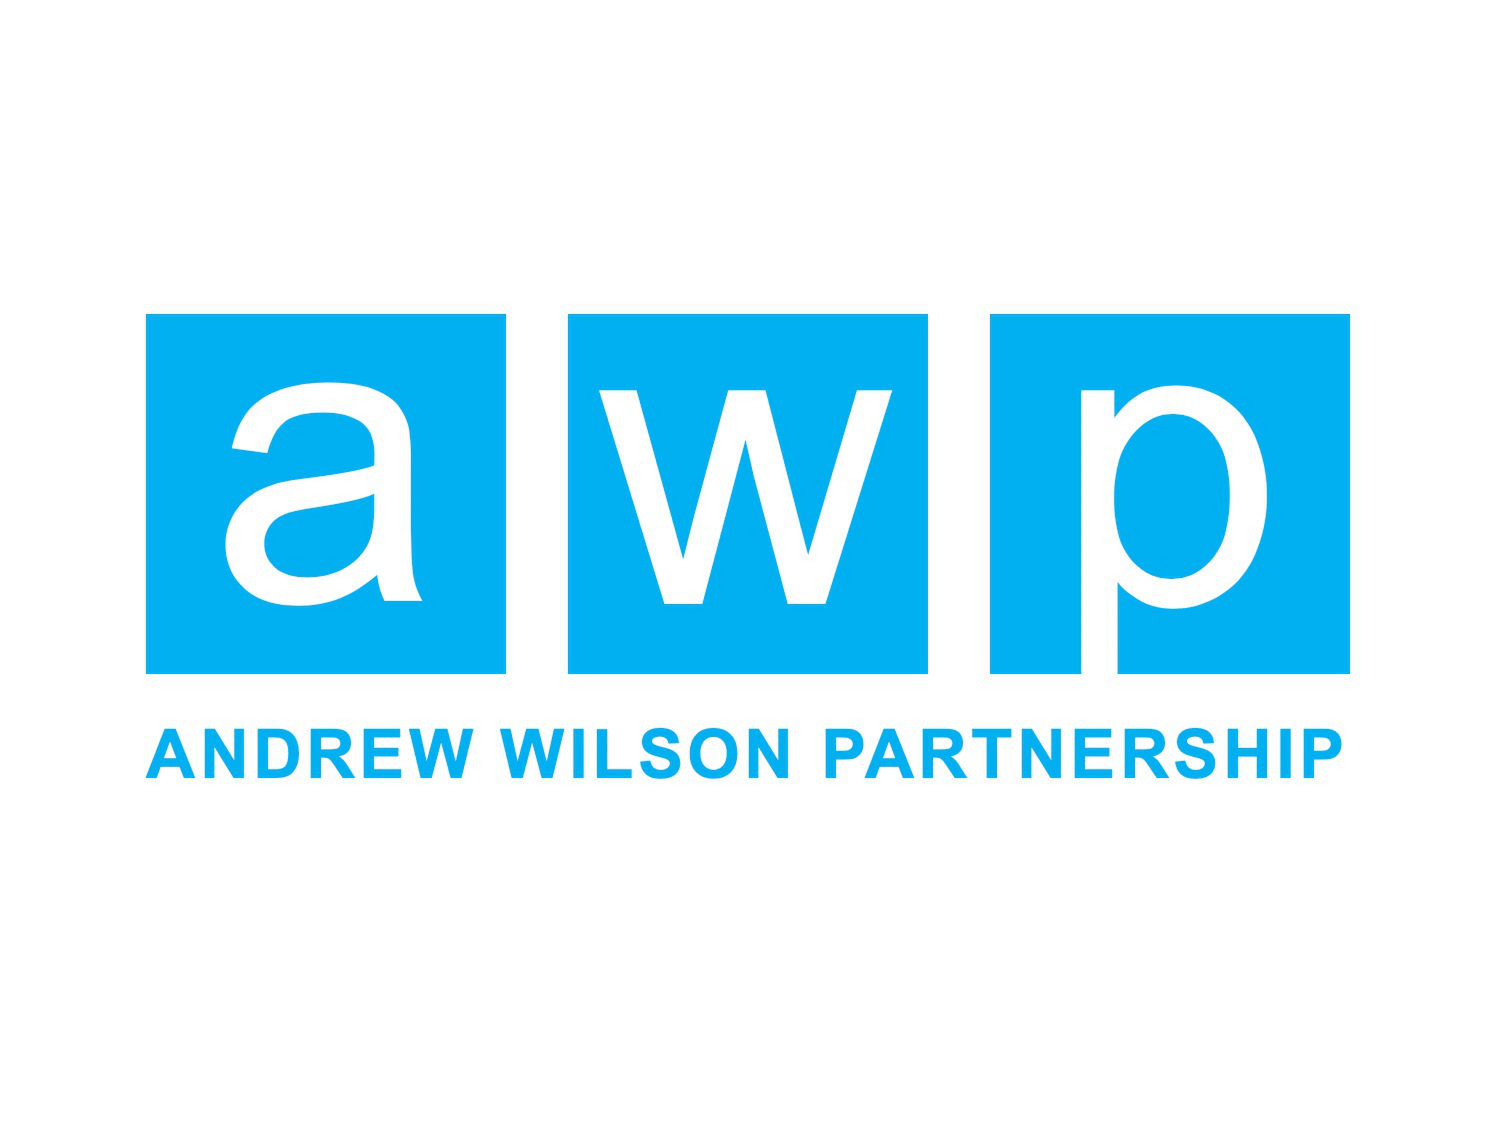 Andrew Wilson Partnership Ltd